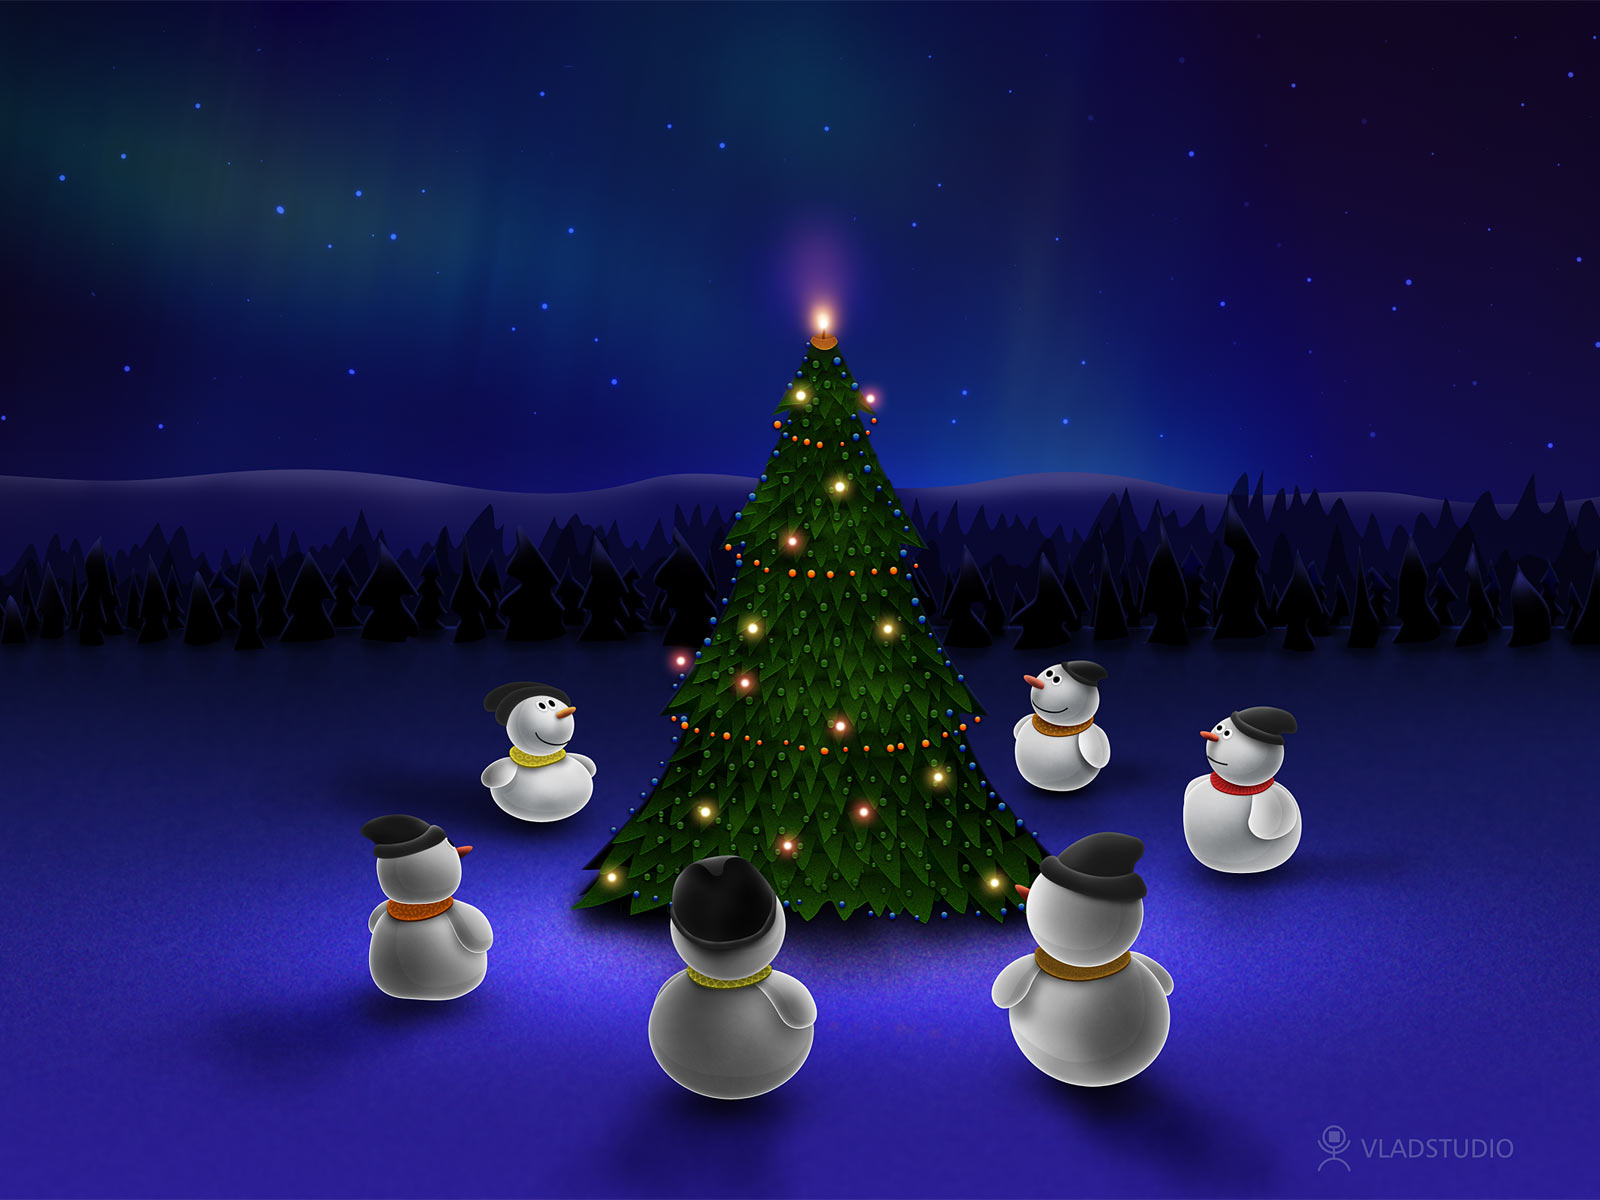 Cute Merry Christmas Wallpapers To Download For Free